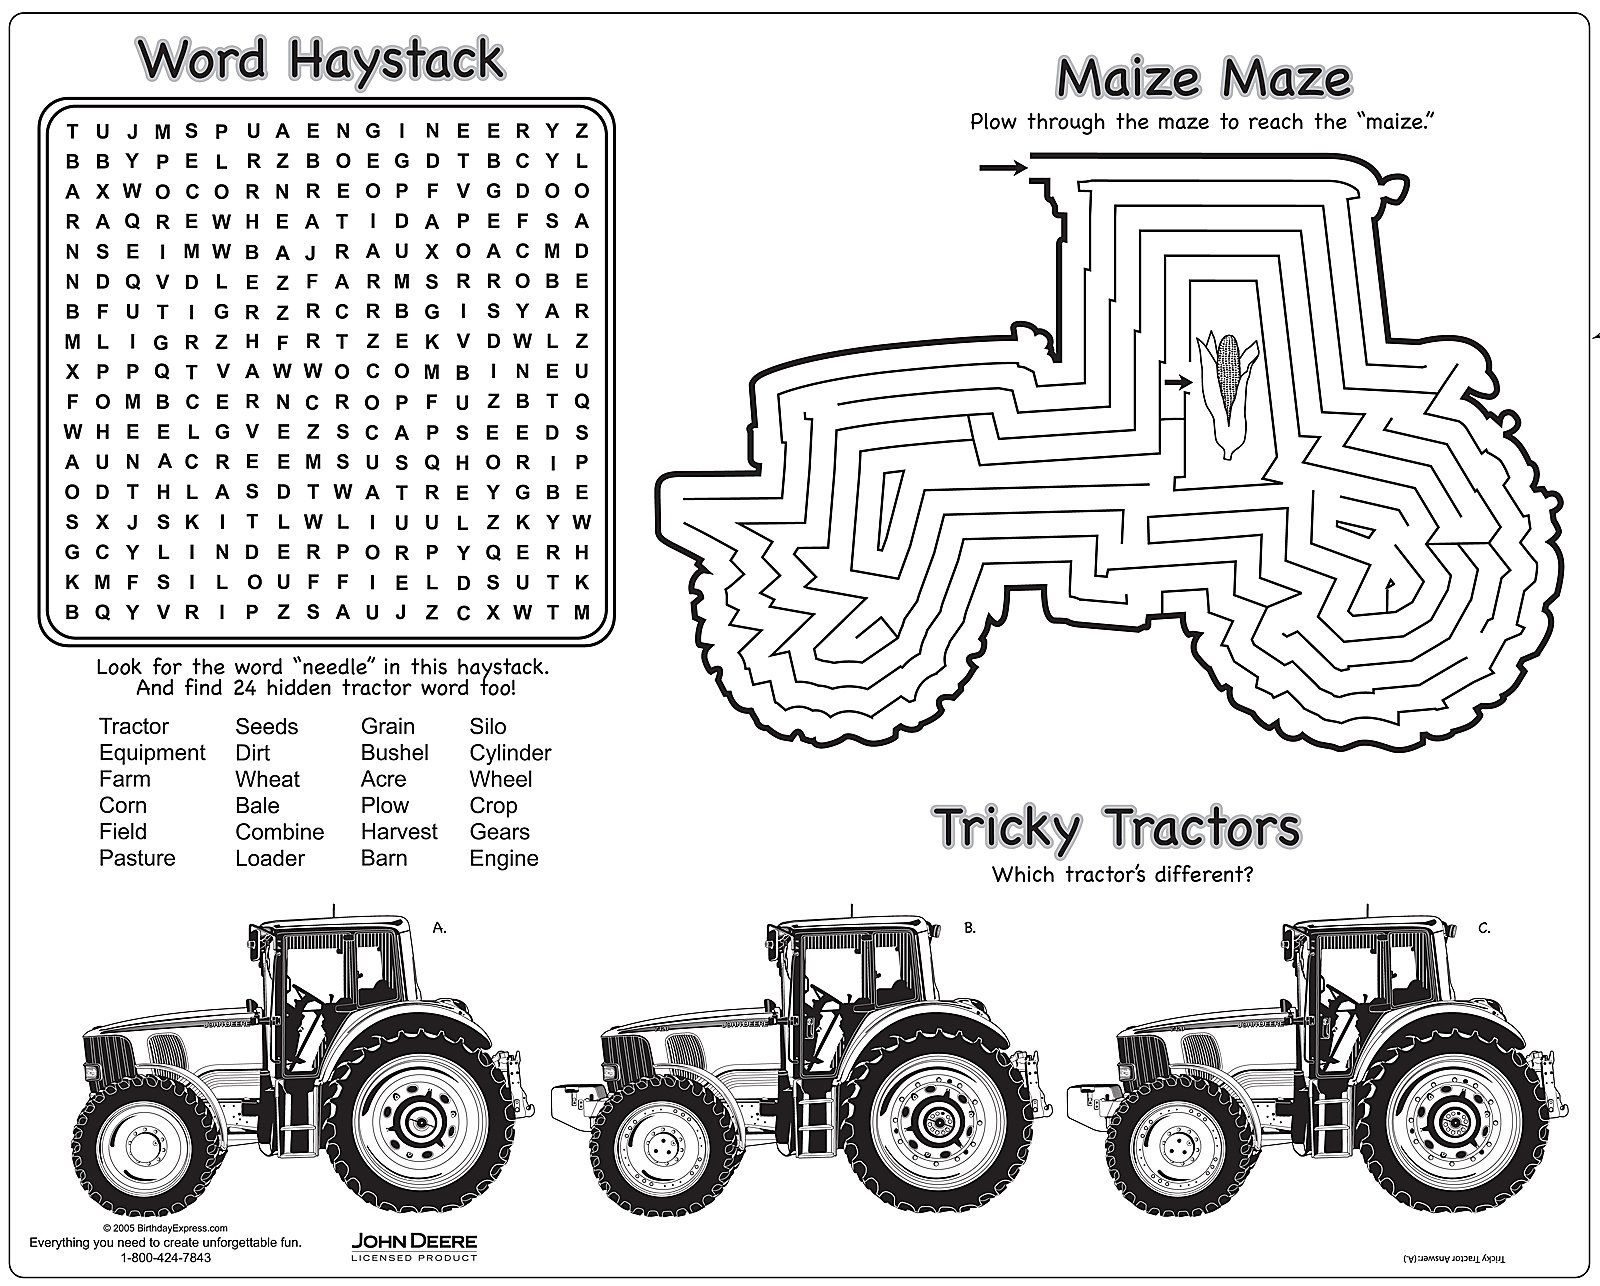 john deere logo coloring page | linc 1 st bday | pinterest | john ... - John Deere Tractor Coloring Pages